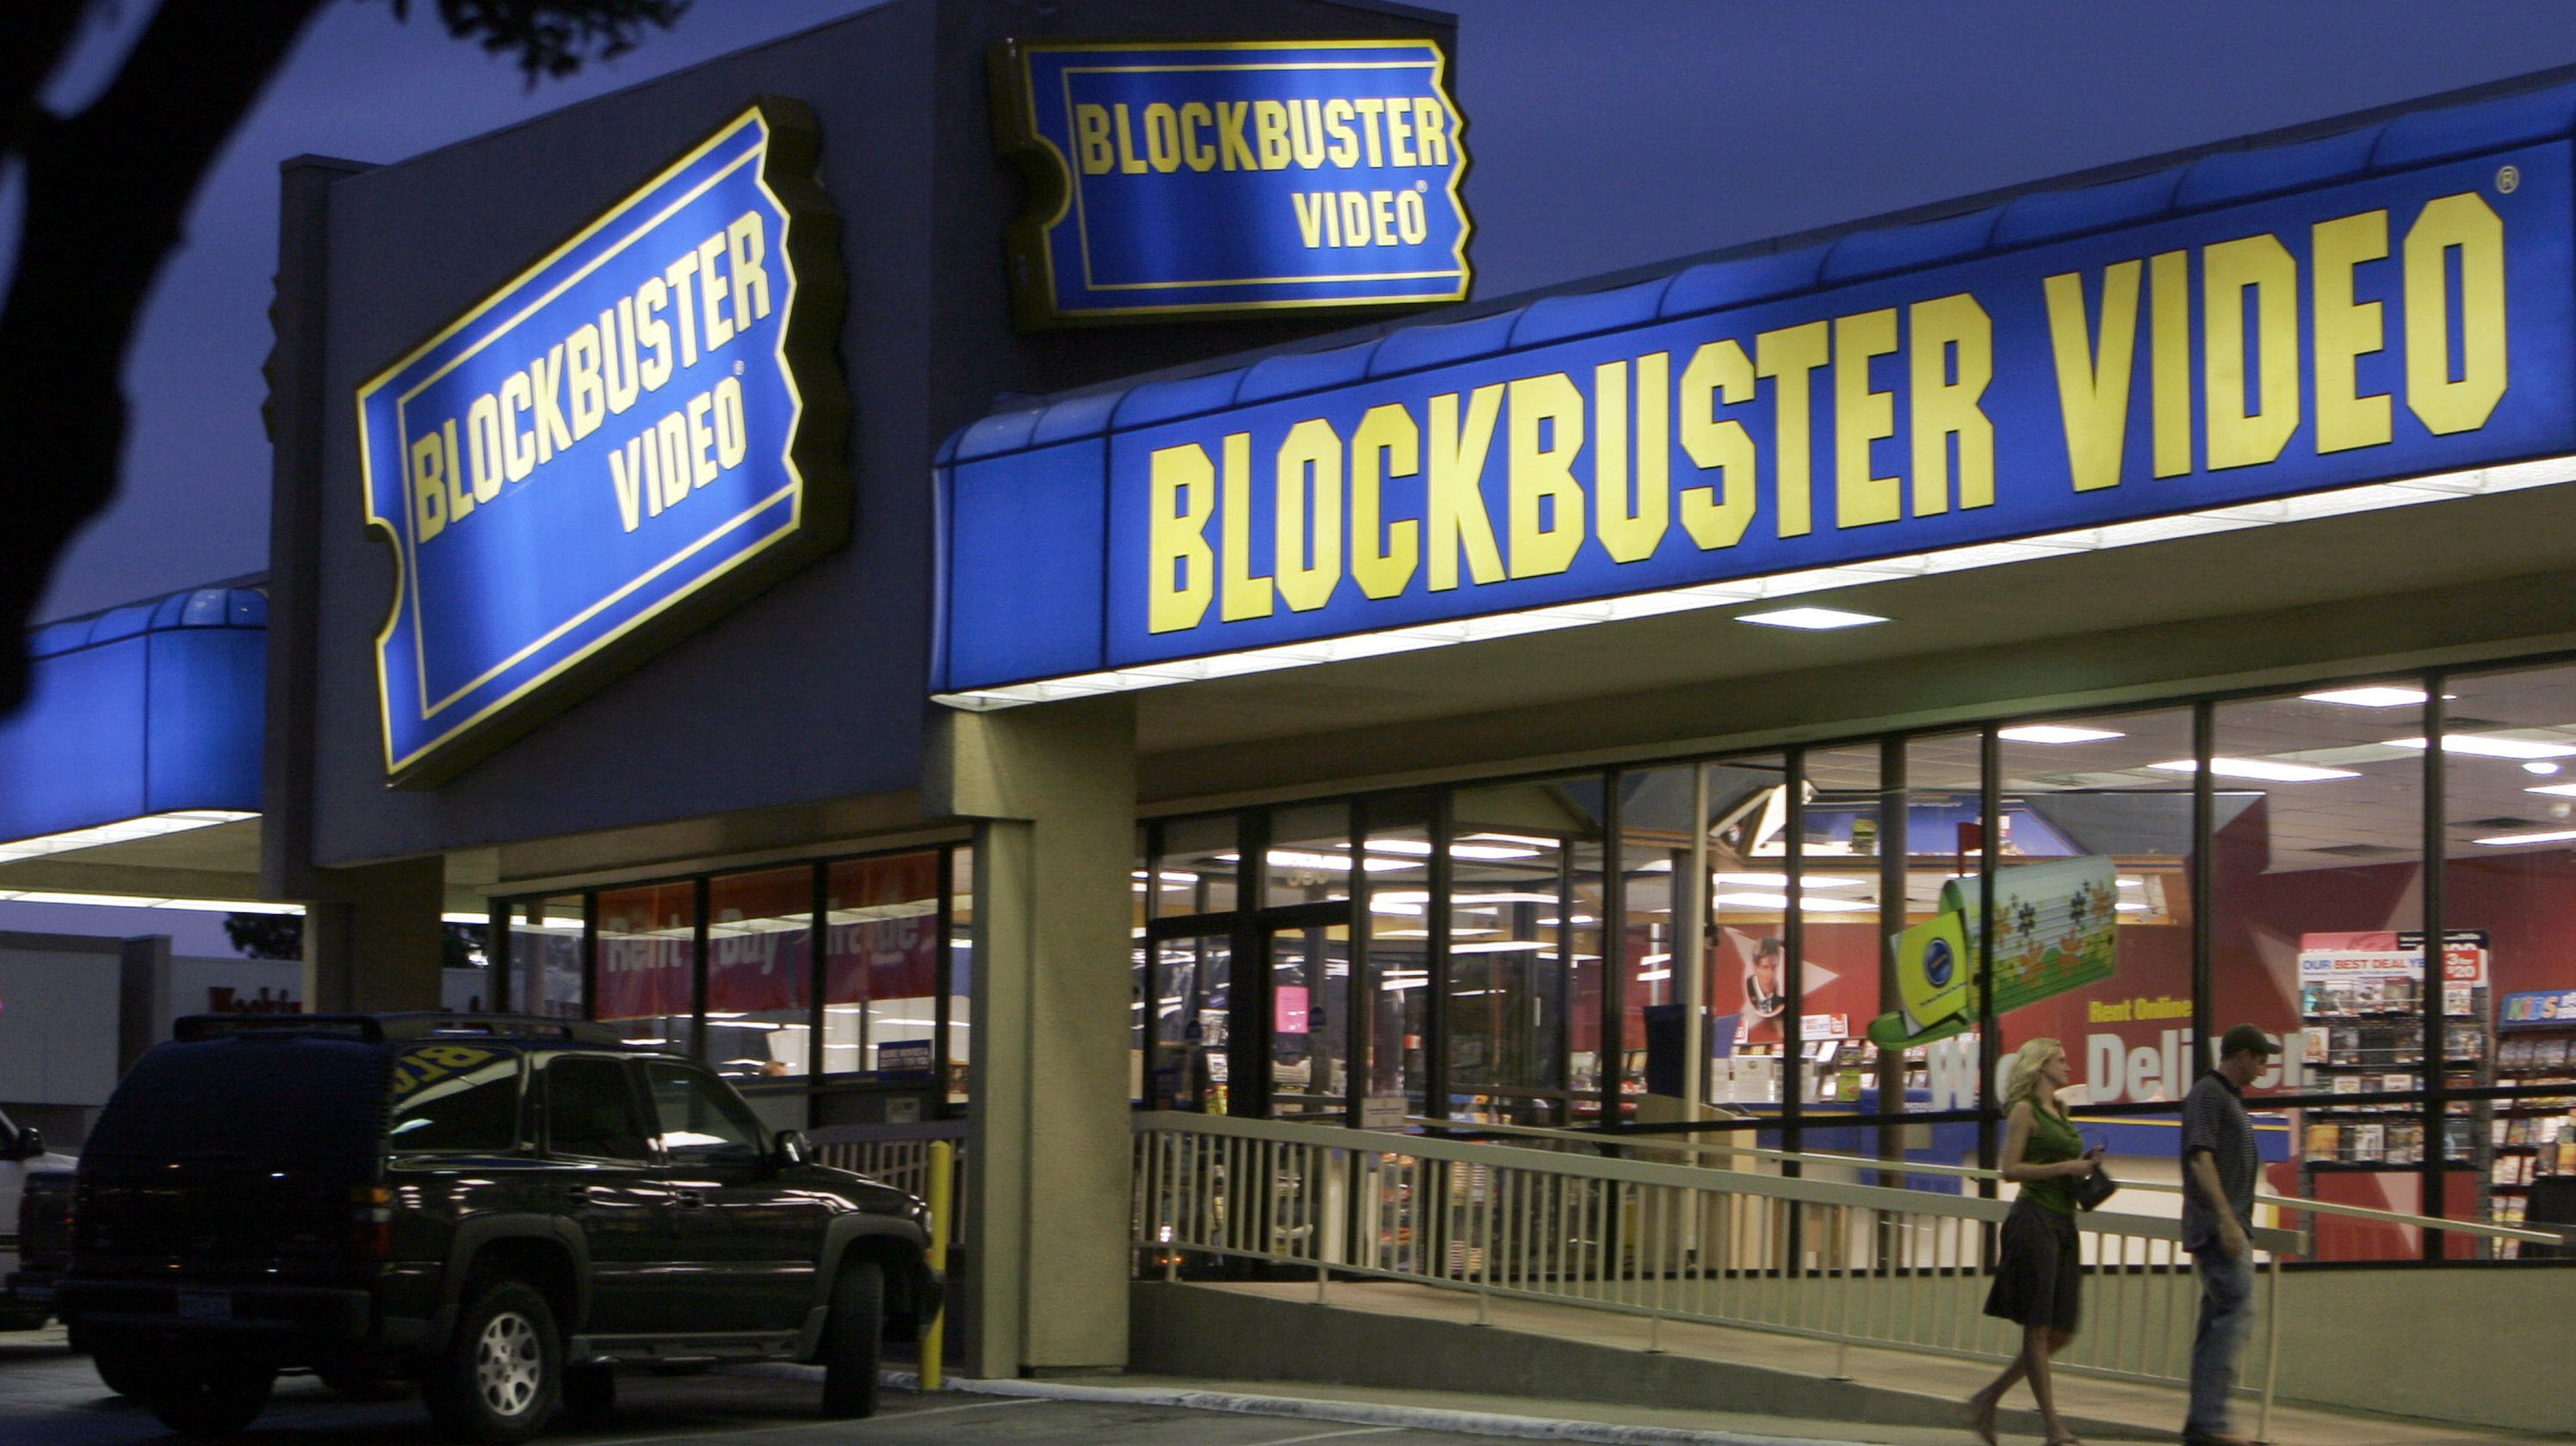 **FILE** In this July 23, 2008 file photo, customers enter a Blockbuster video store in Dallas. Circuit City Stores says it received a letter Friday, May 9, 2008, stating Blockbuster's largest shareholder Carl Icahn is prepared to buy the company if Blockbuster does not receive the appropriate financing or shareholder approval. (AP Photo/Ron Heflin, File)